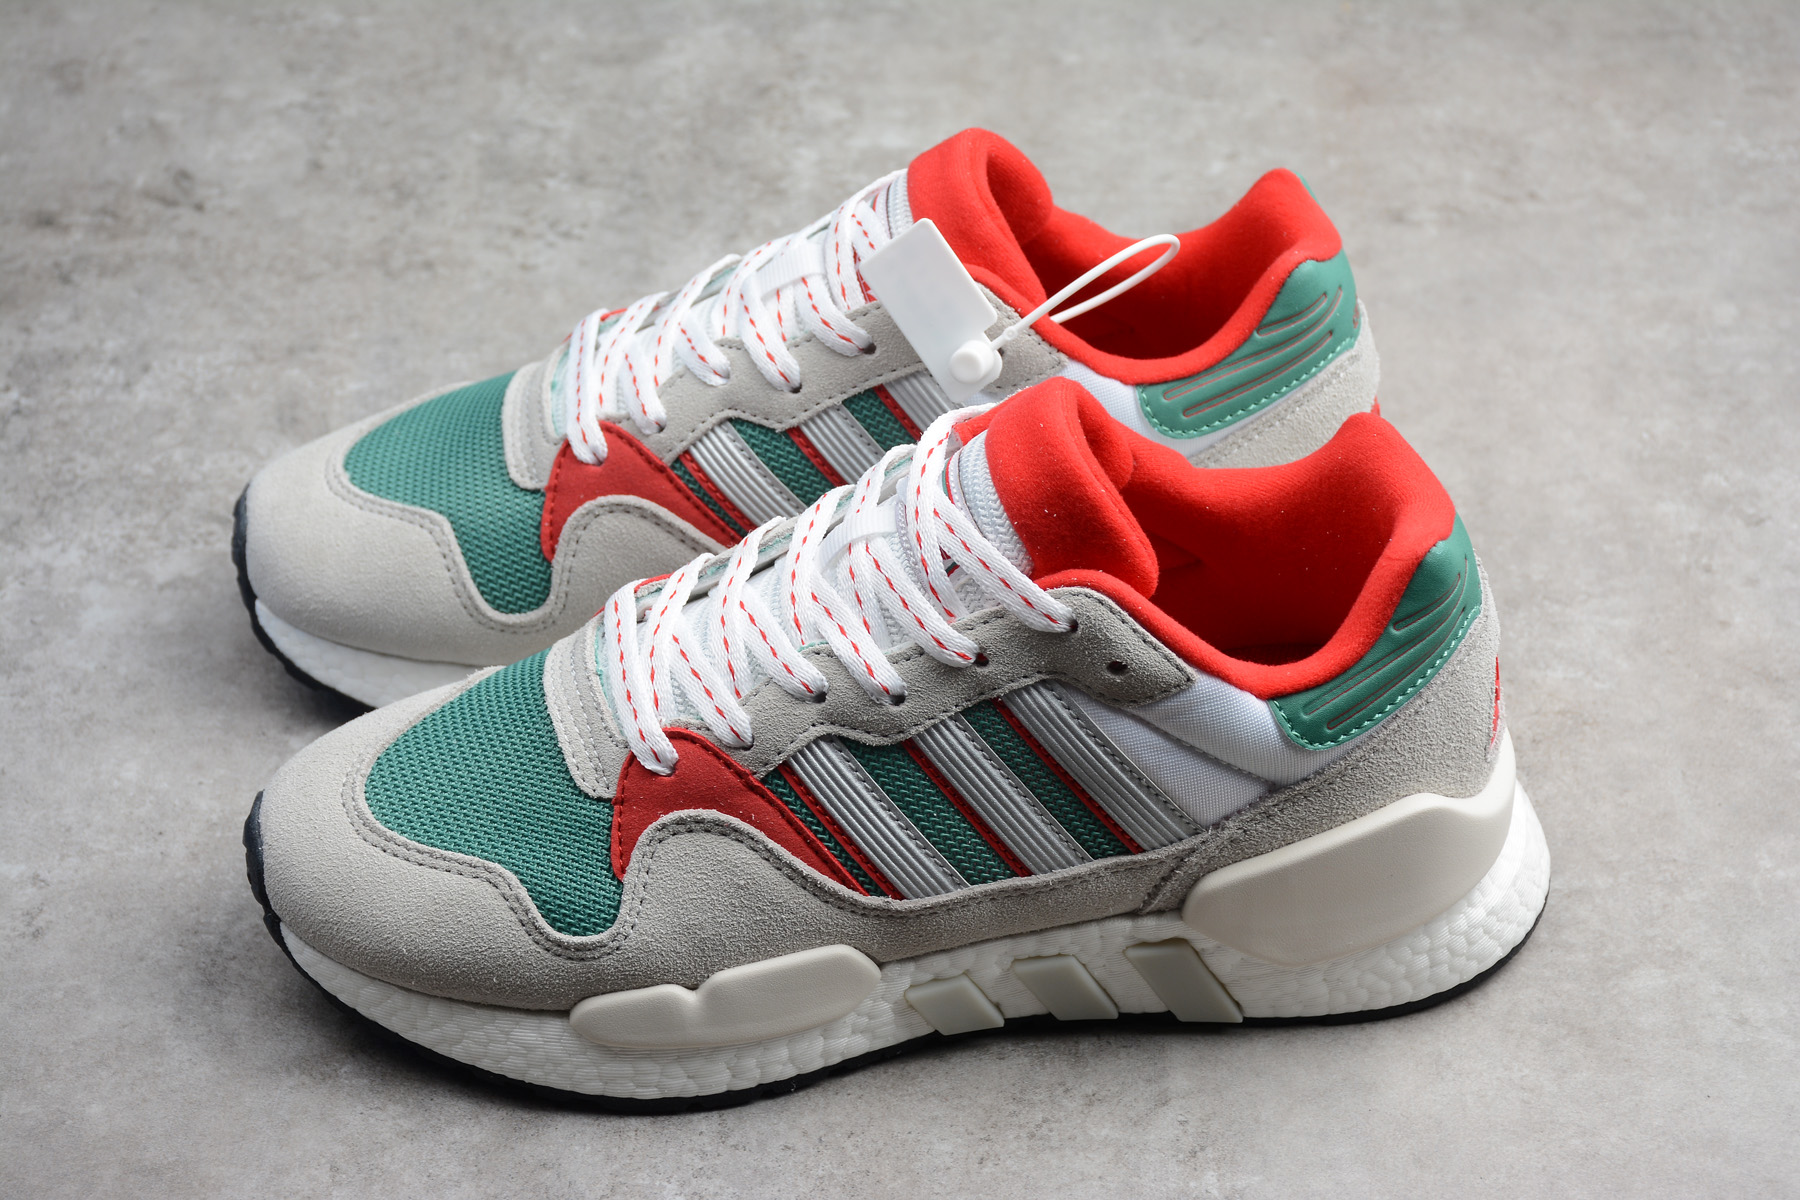 adidas EQT Support 91/18 Grey/Green-Red